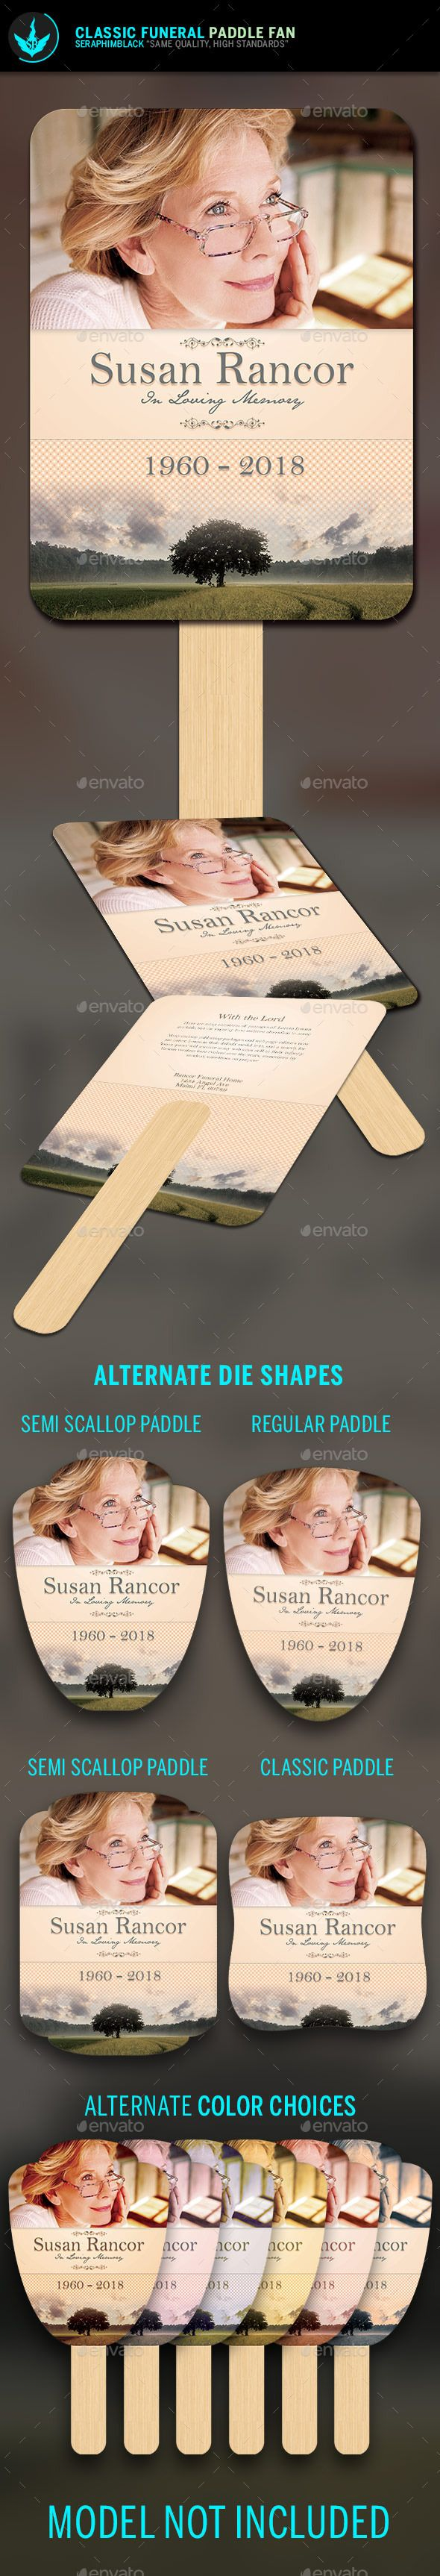 classic funeral paddle fan template pinterest funeral template